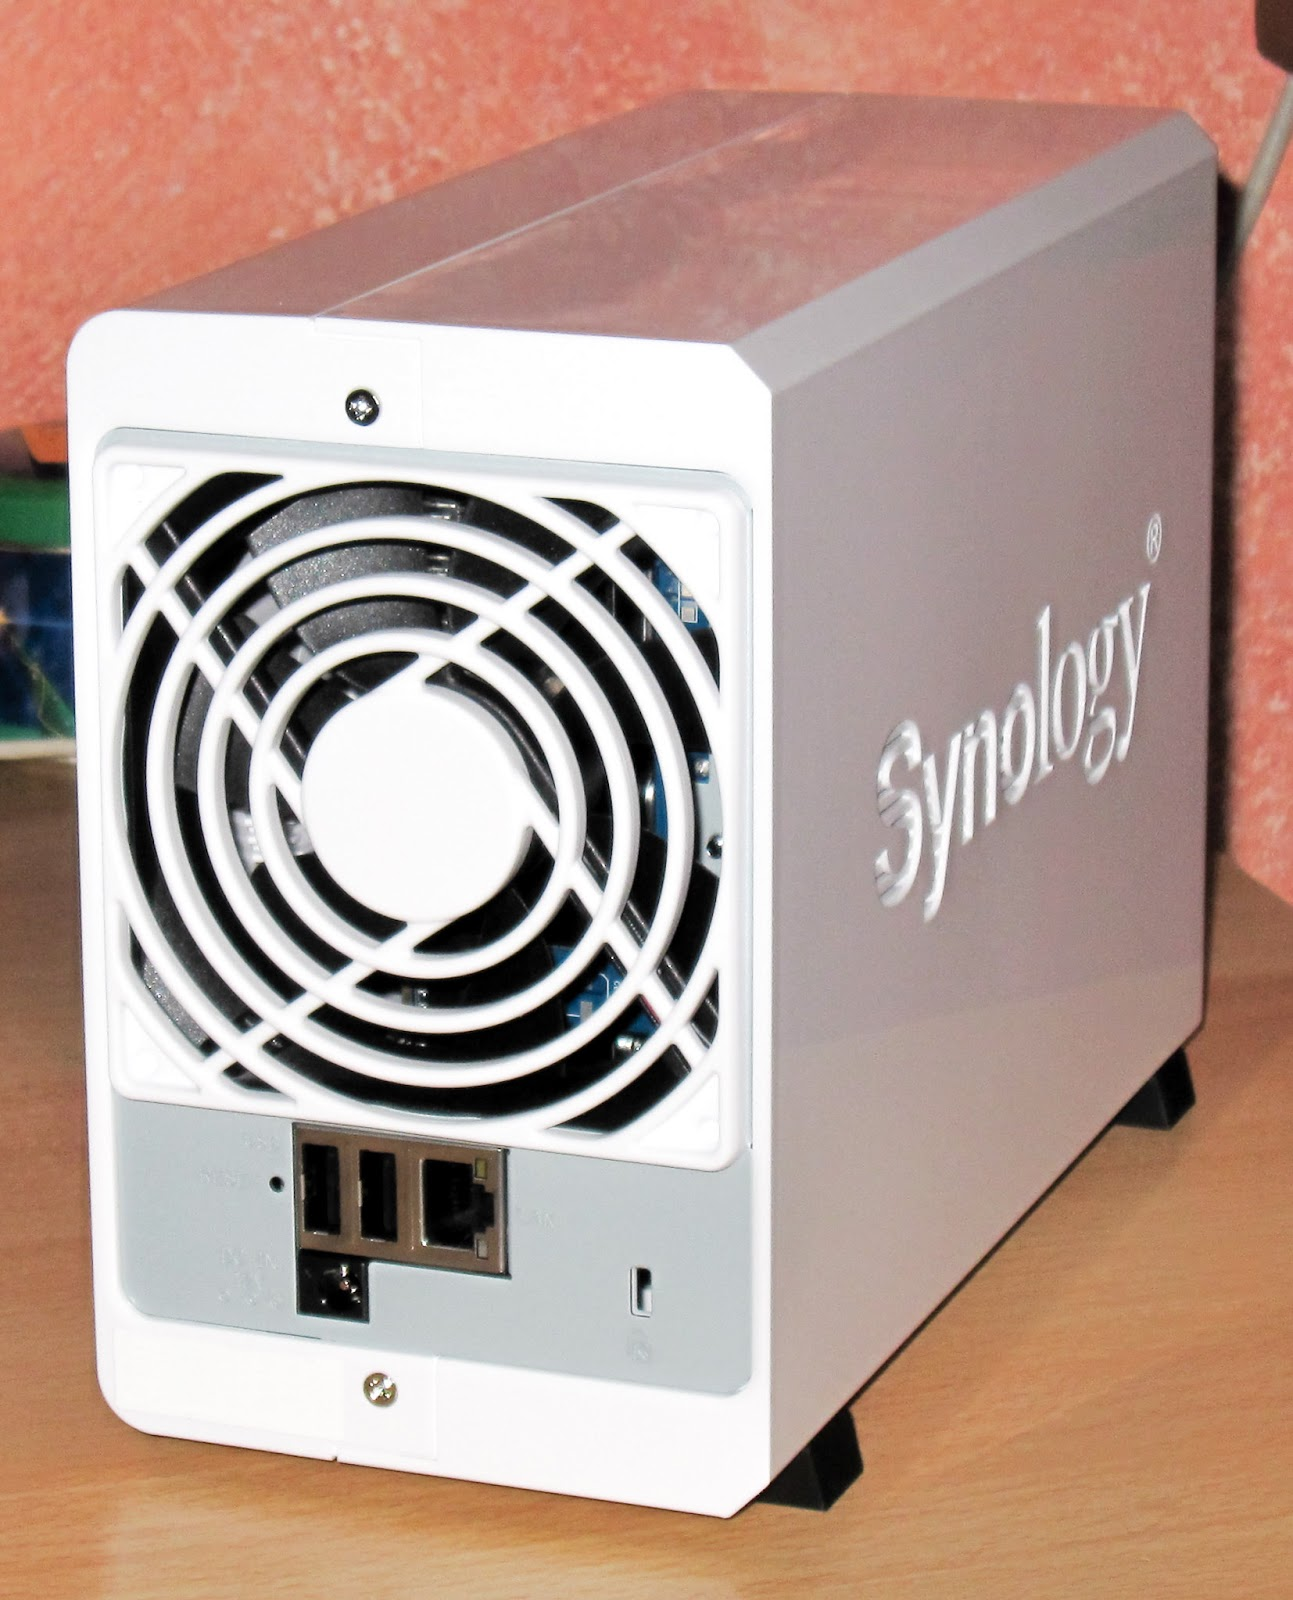 ... Synology Disk Station DS213j Review photos, benchmark, and power  consumption test